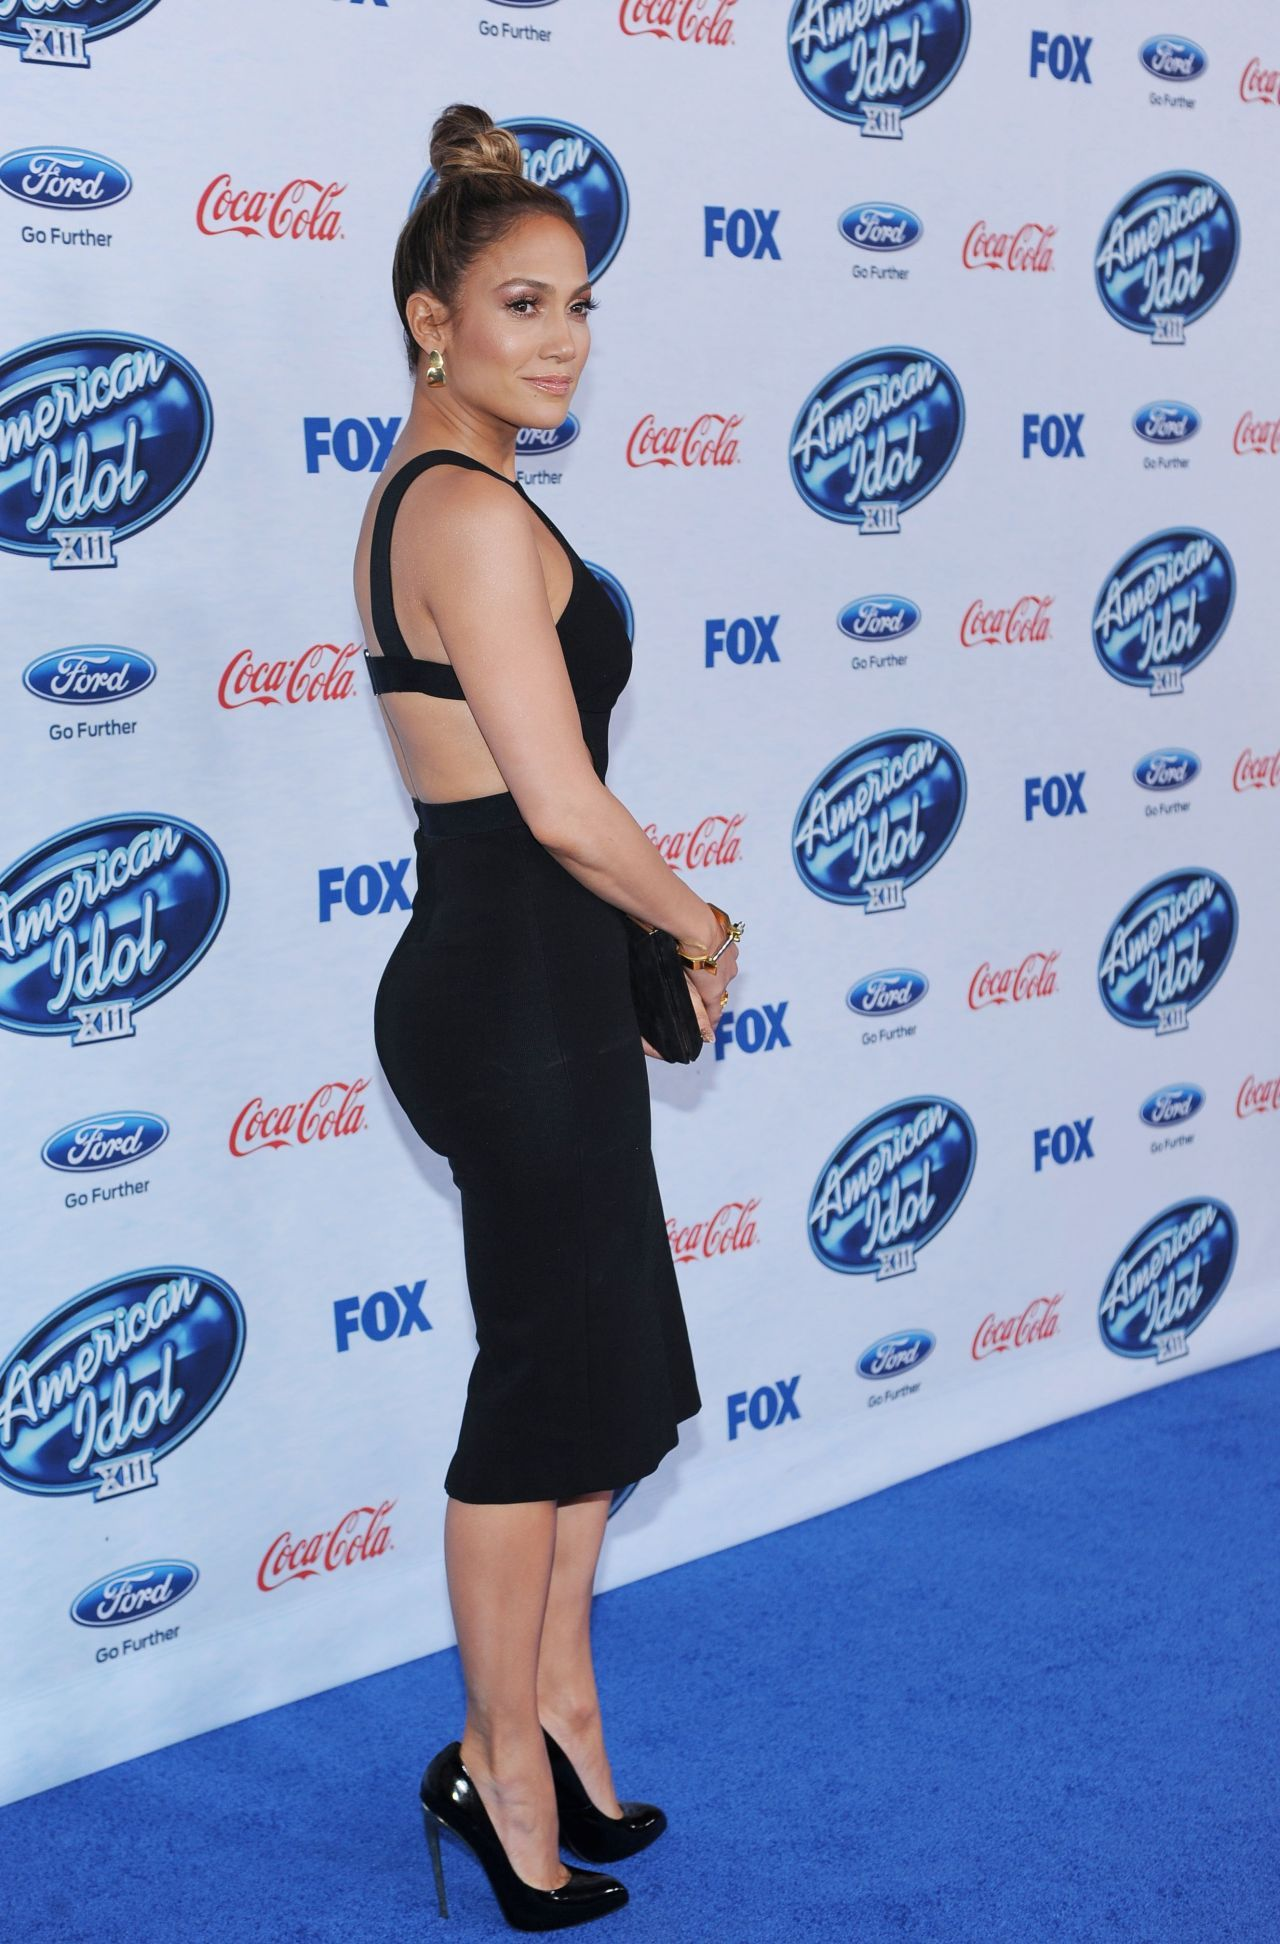 jennifer-lopez-attends-american-idol-finalists-party-in-west-hollywood-february-2014_1